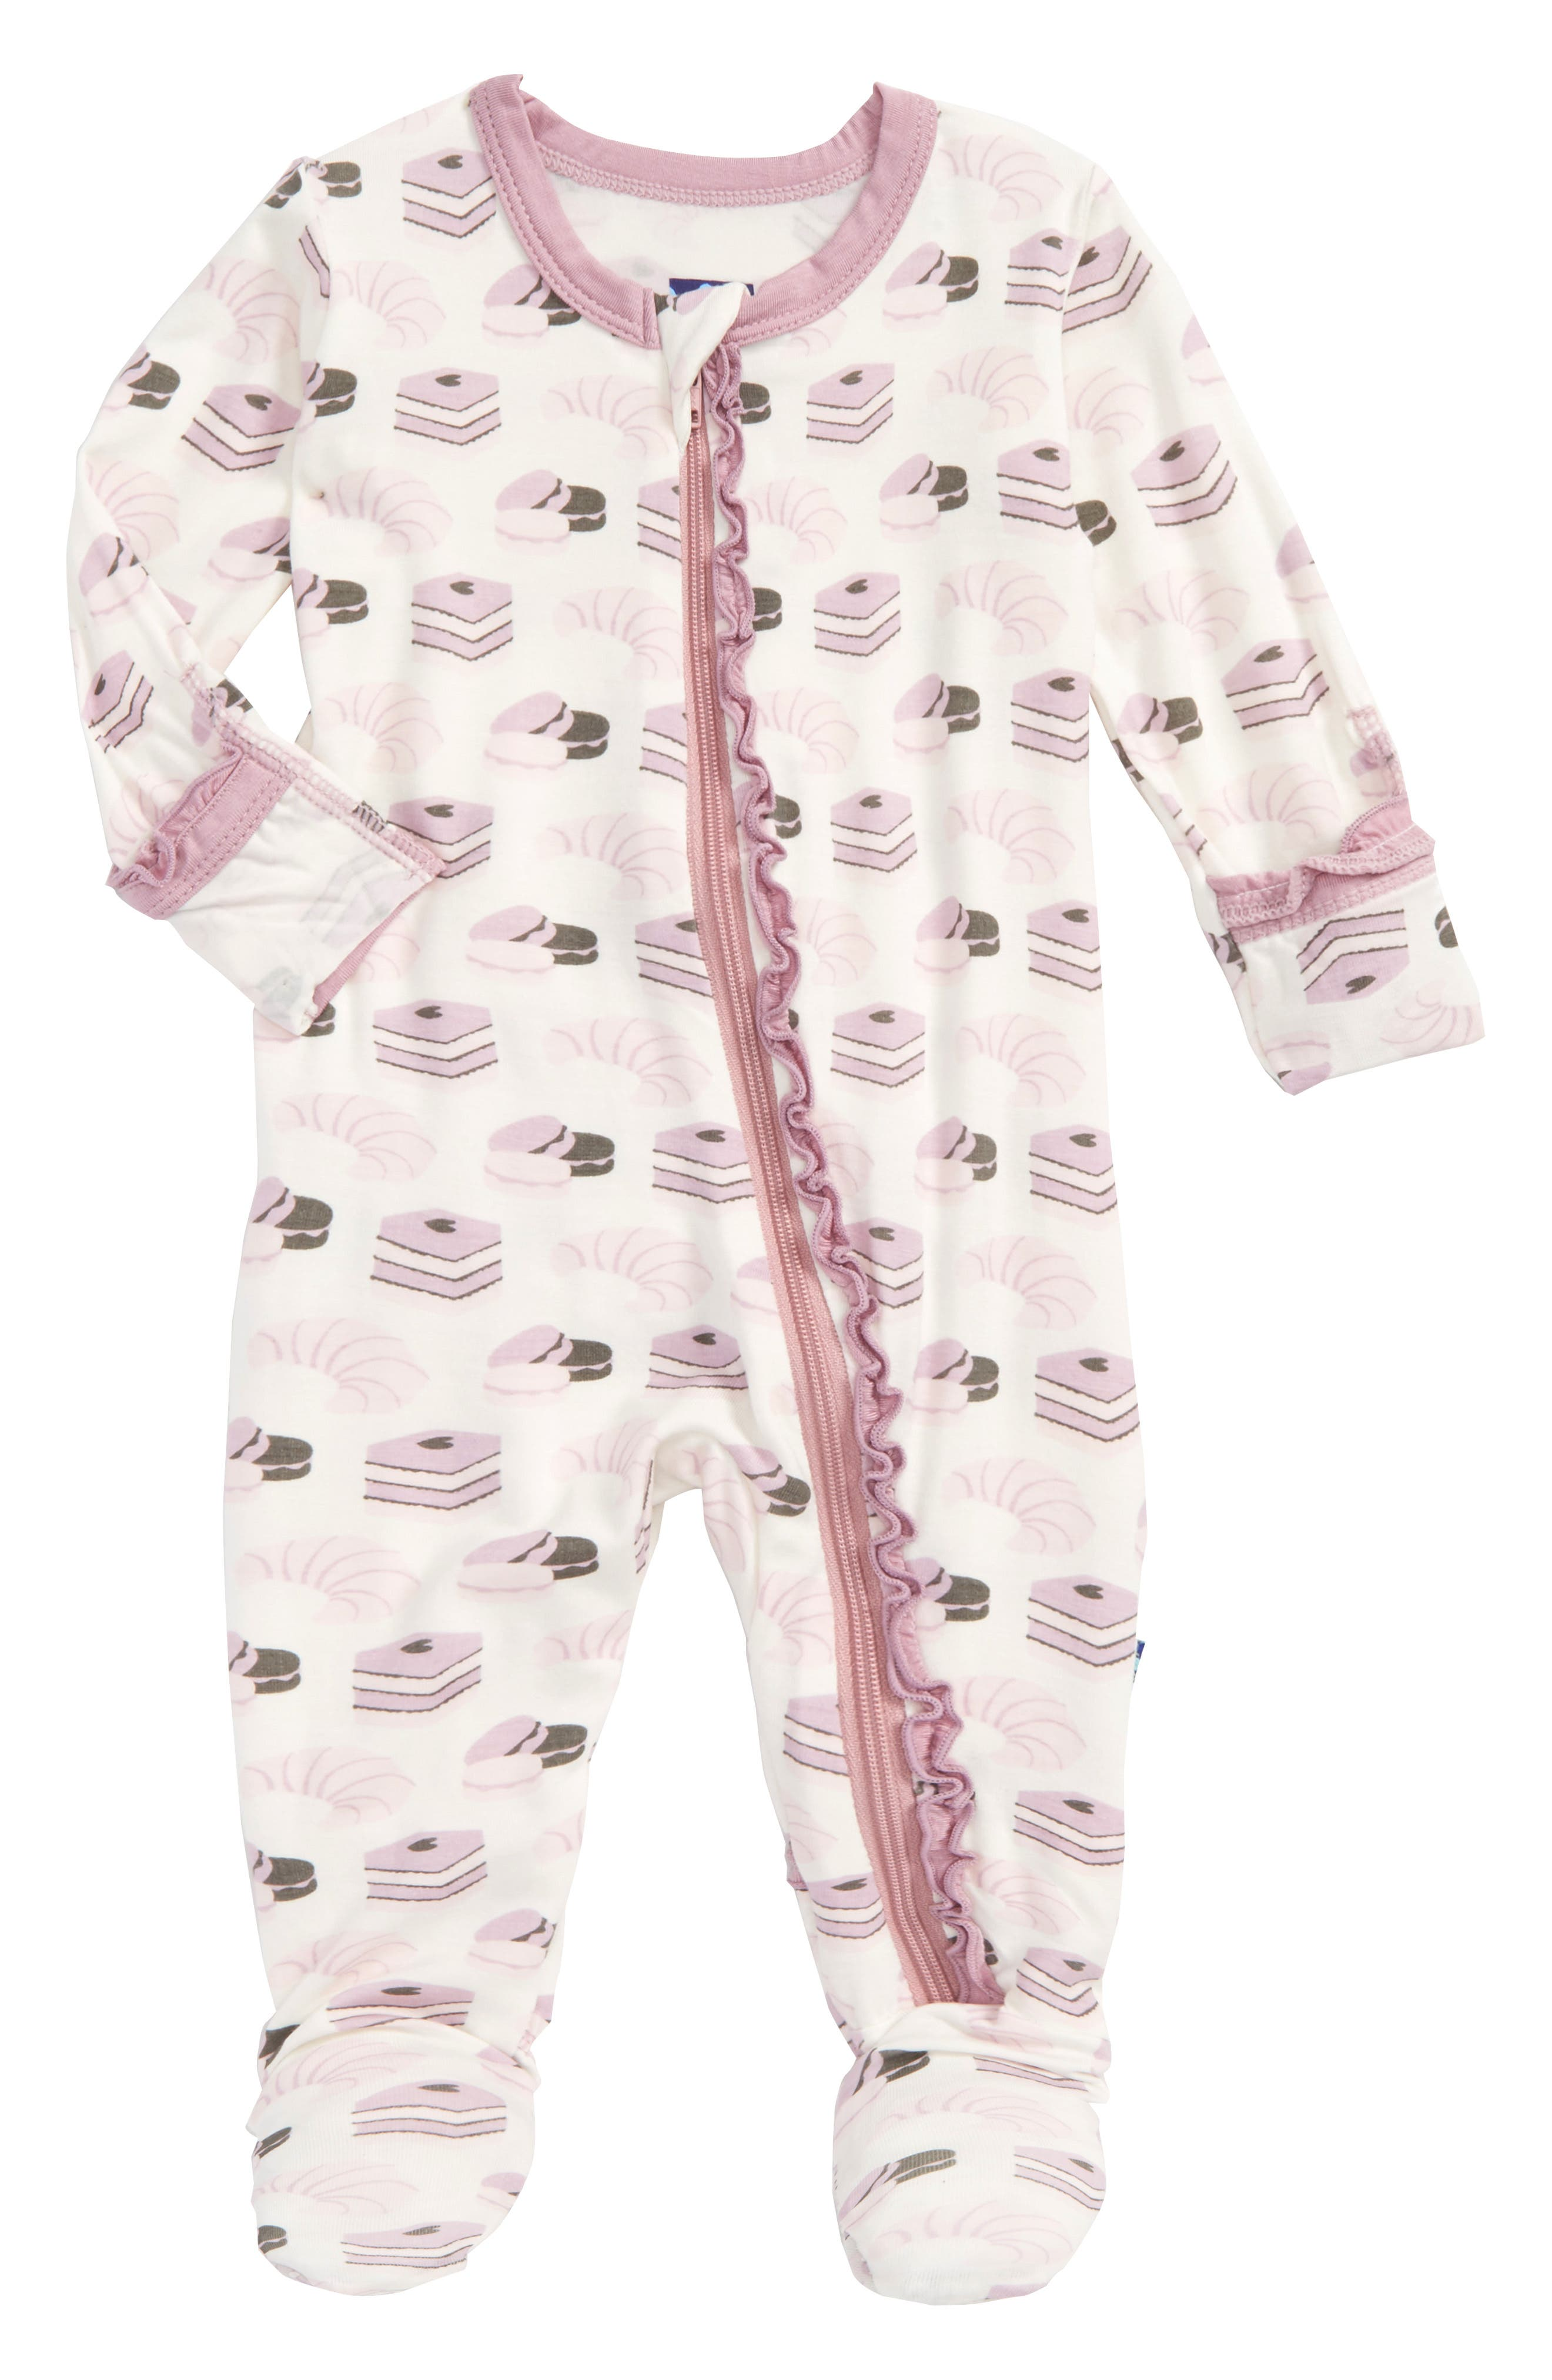 Print Fitted One-Piece Footie Pajamas,                         Main,                         color, 900